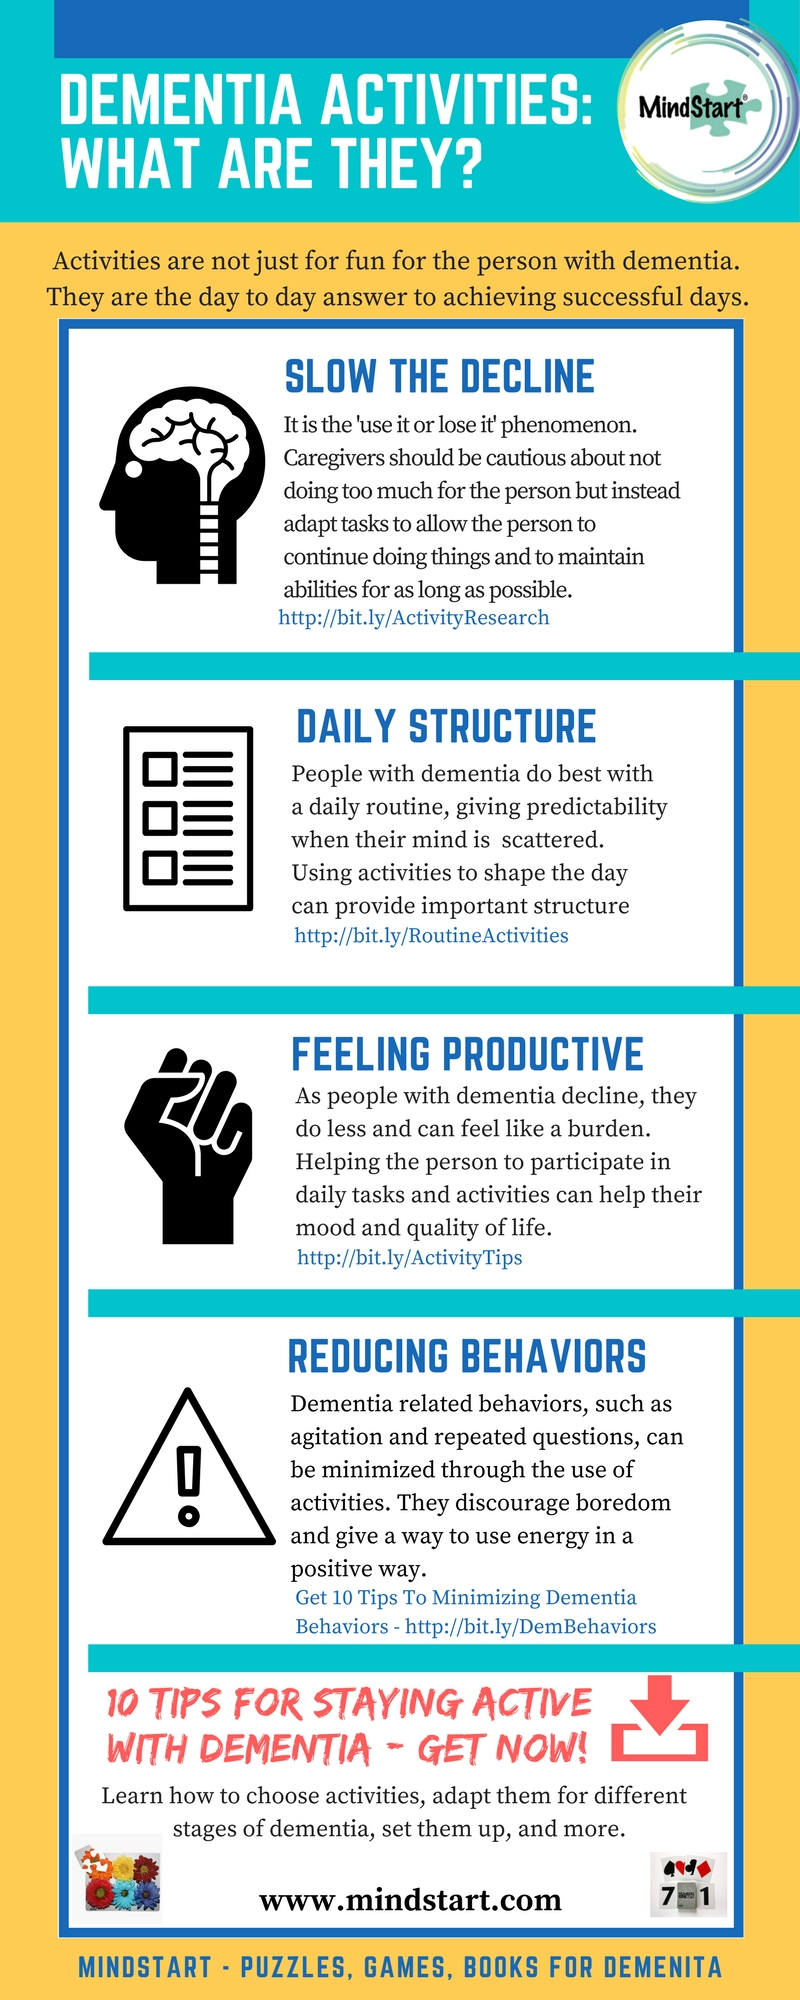 dementia activities infographic